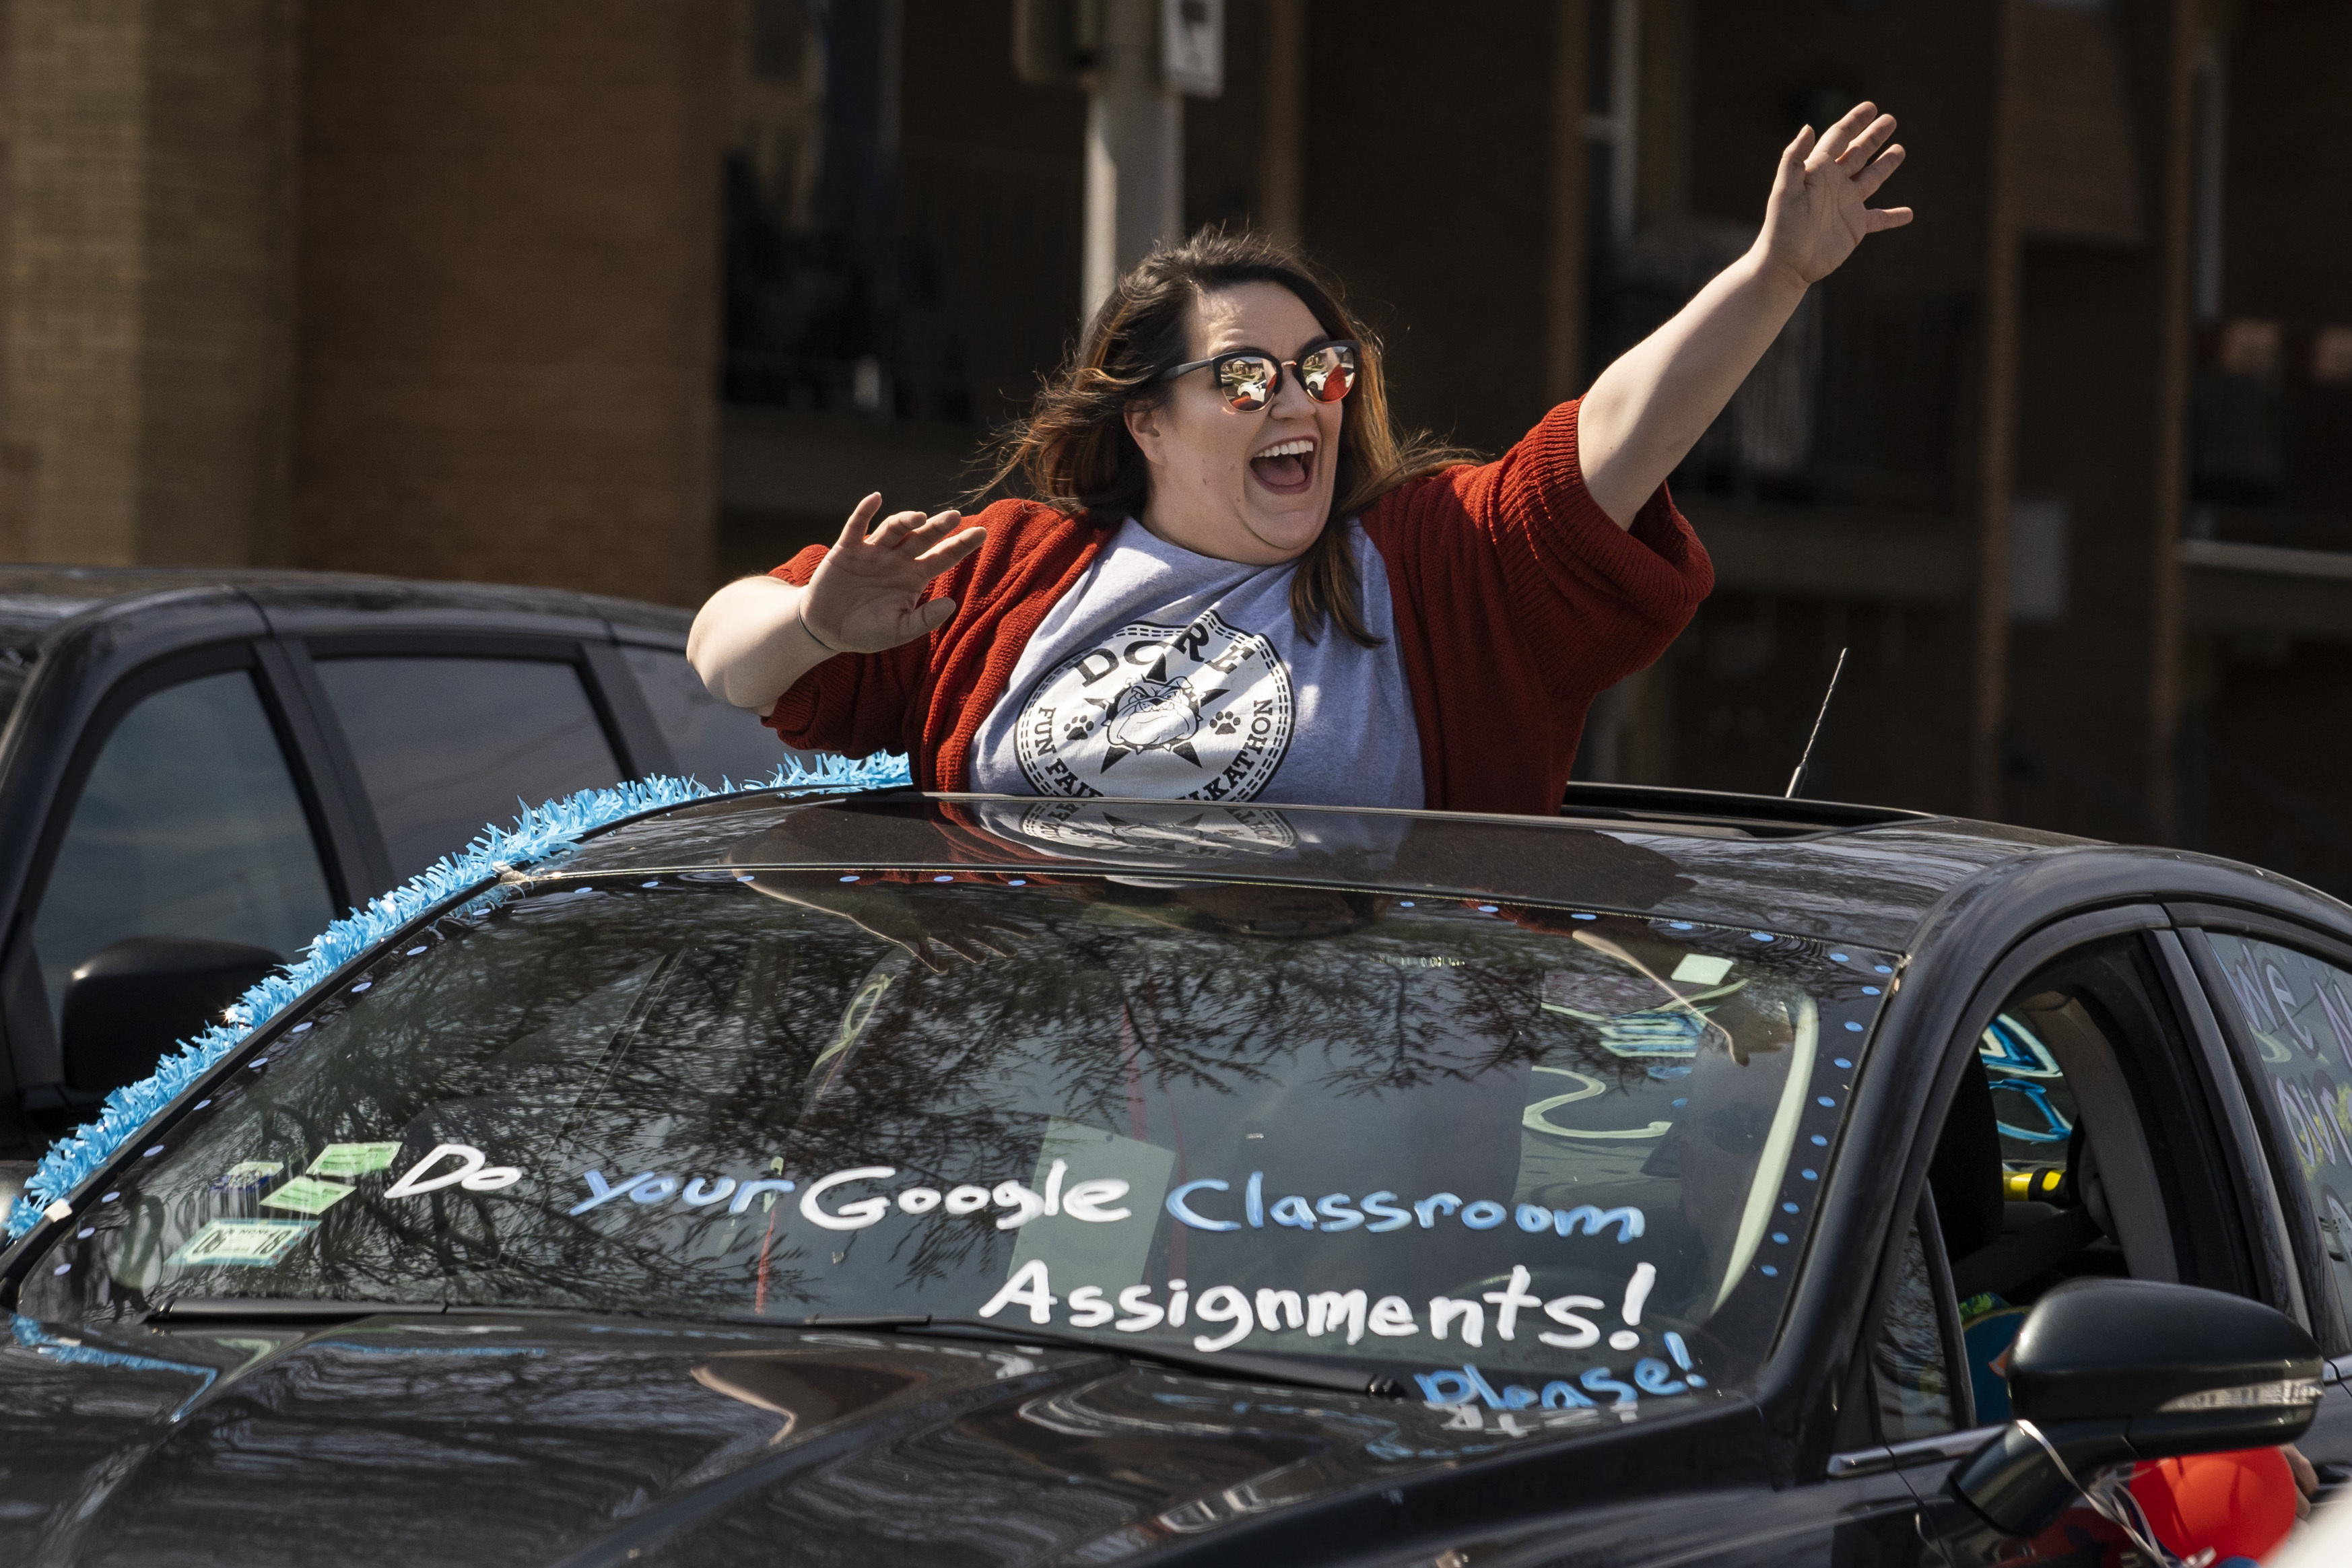 Teachers and staff at Dore Elementary School parade around the neighborhood Thursday afternoon, waving to families and children in the Southwest Side community.